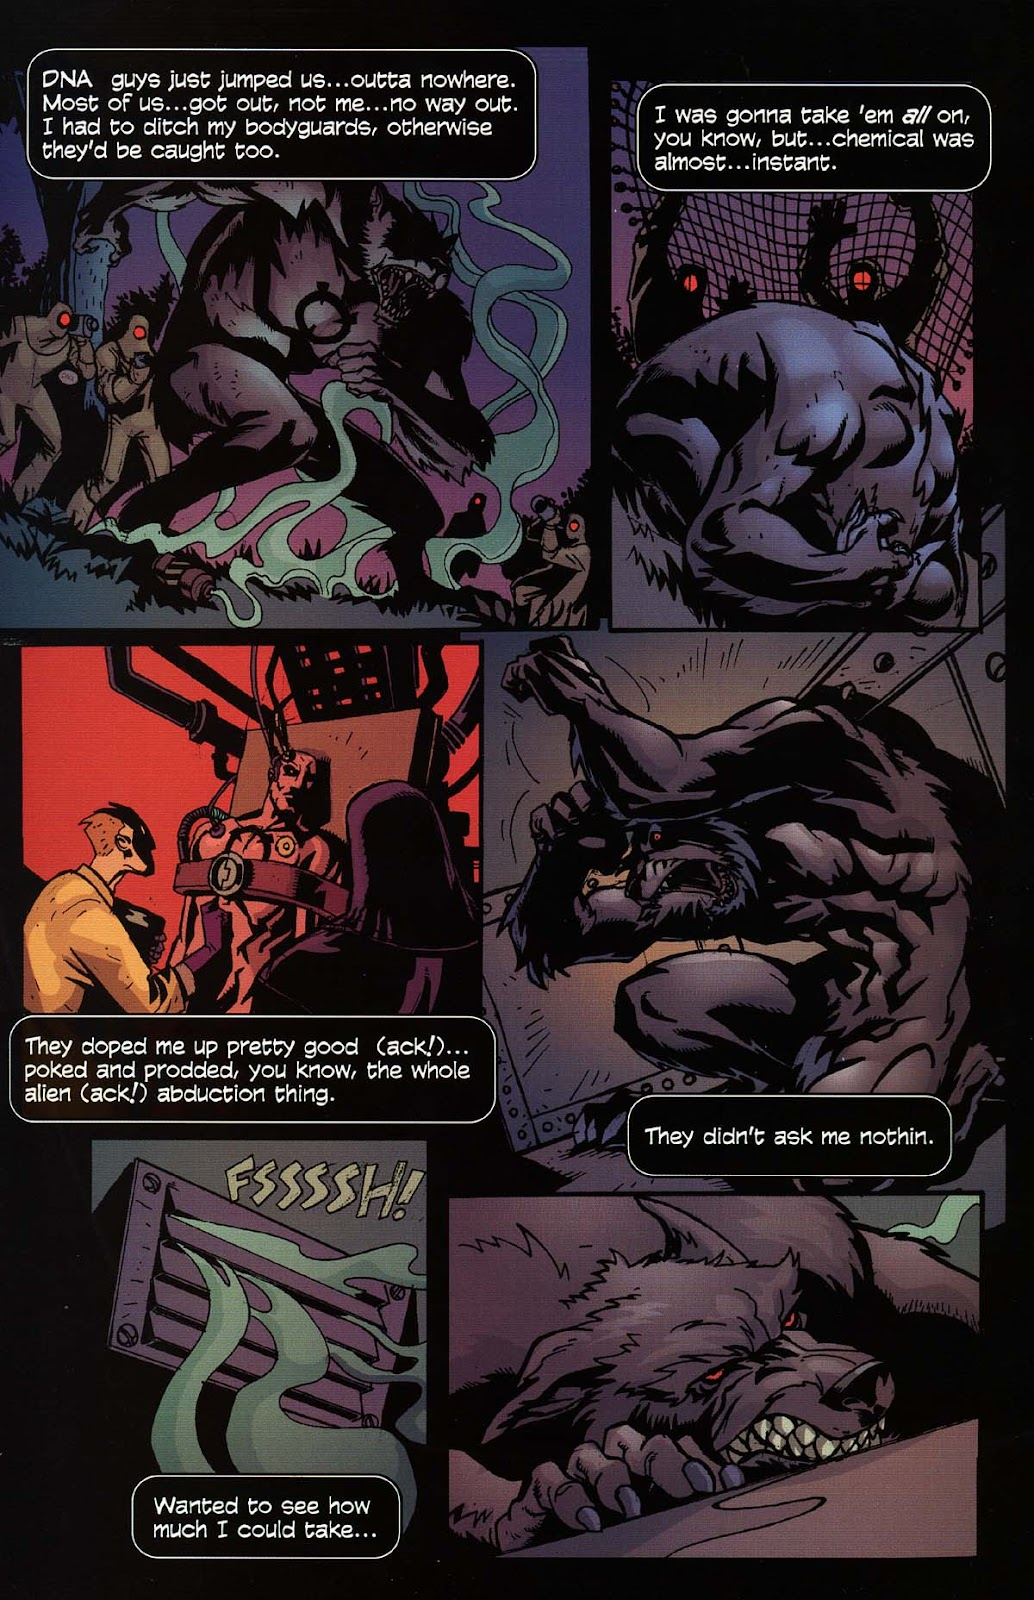 Read online Werewolf the Apocalypse comic -  Issue # Bone Gnawers - 11